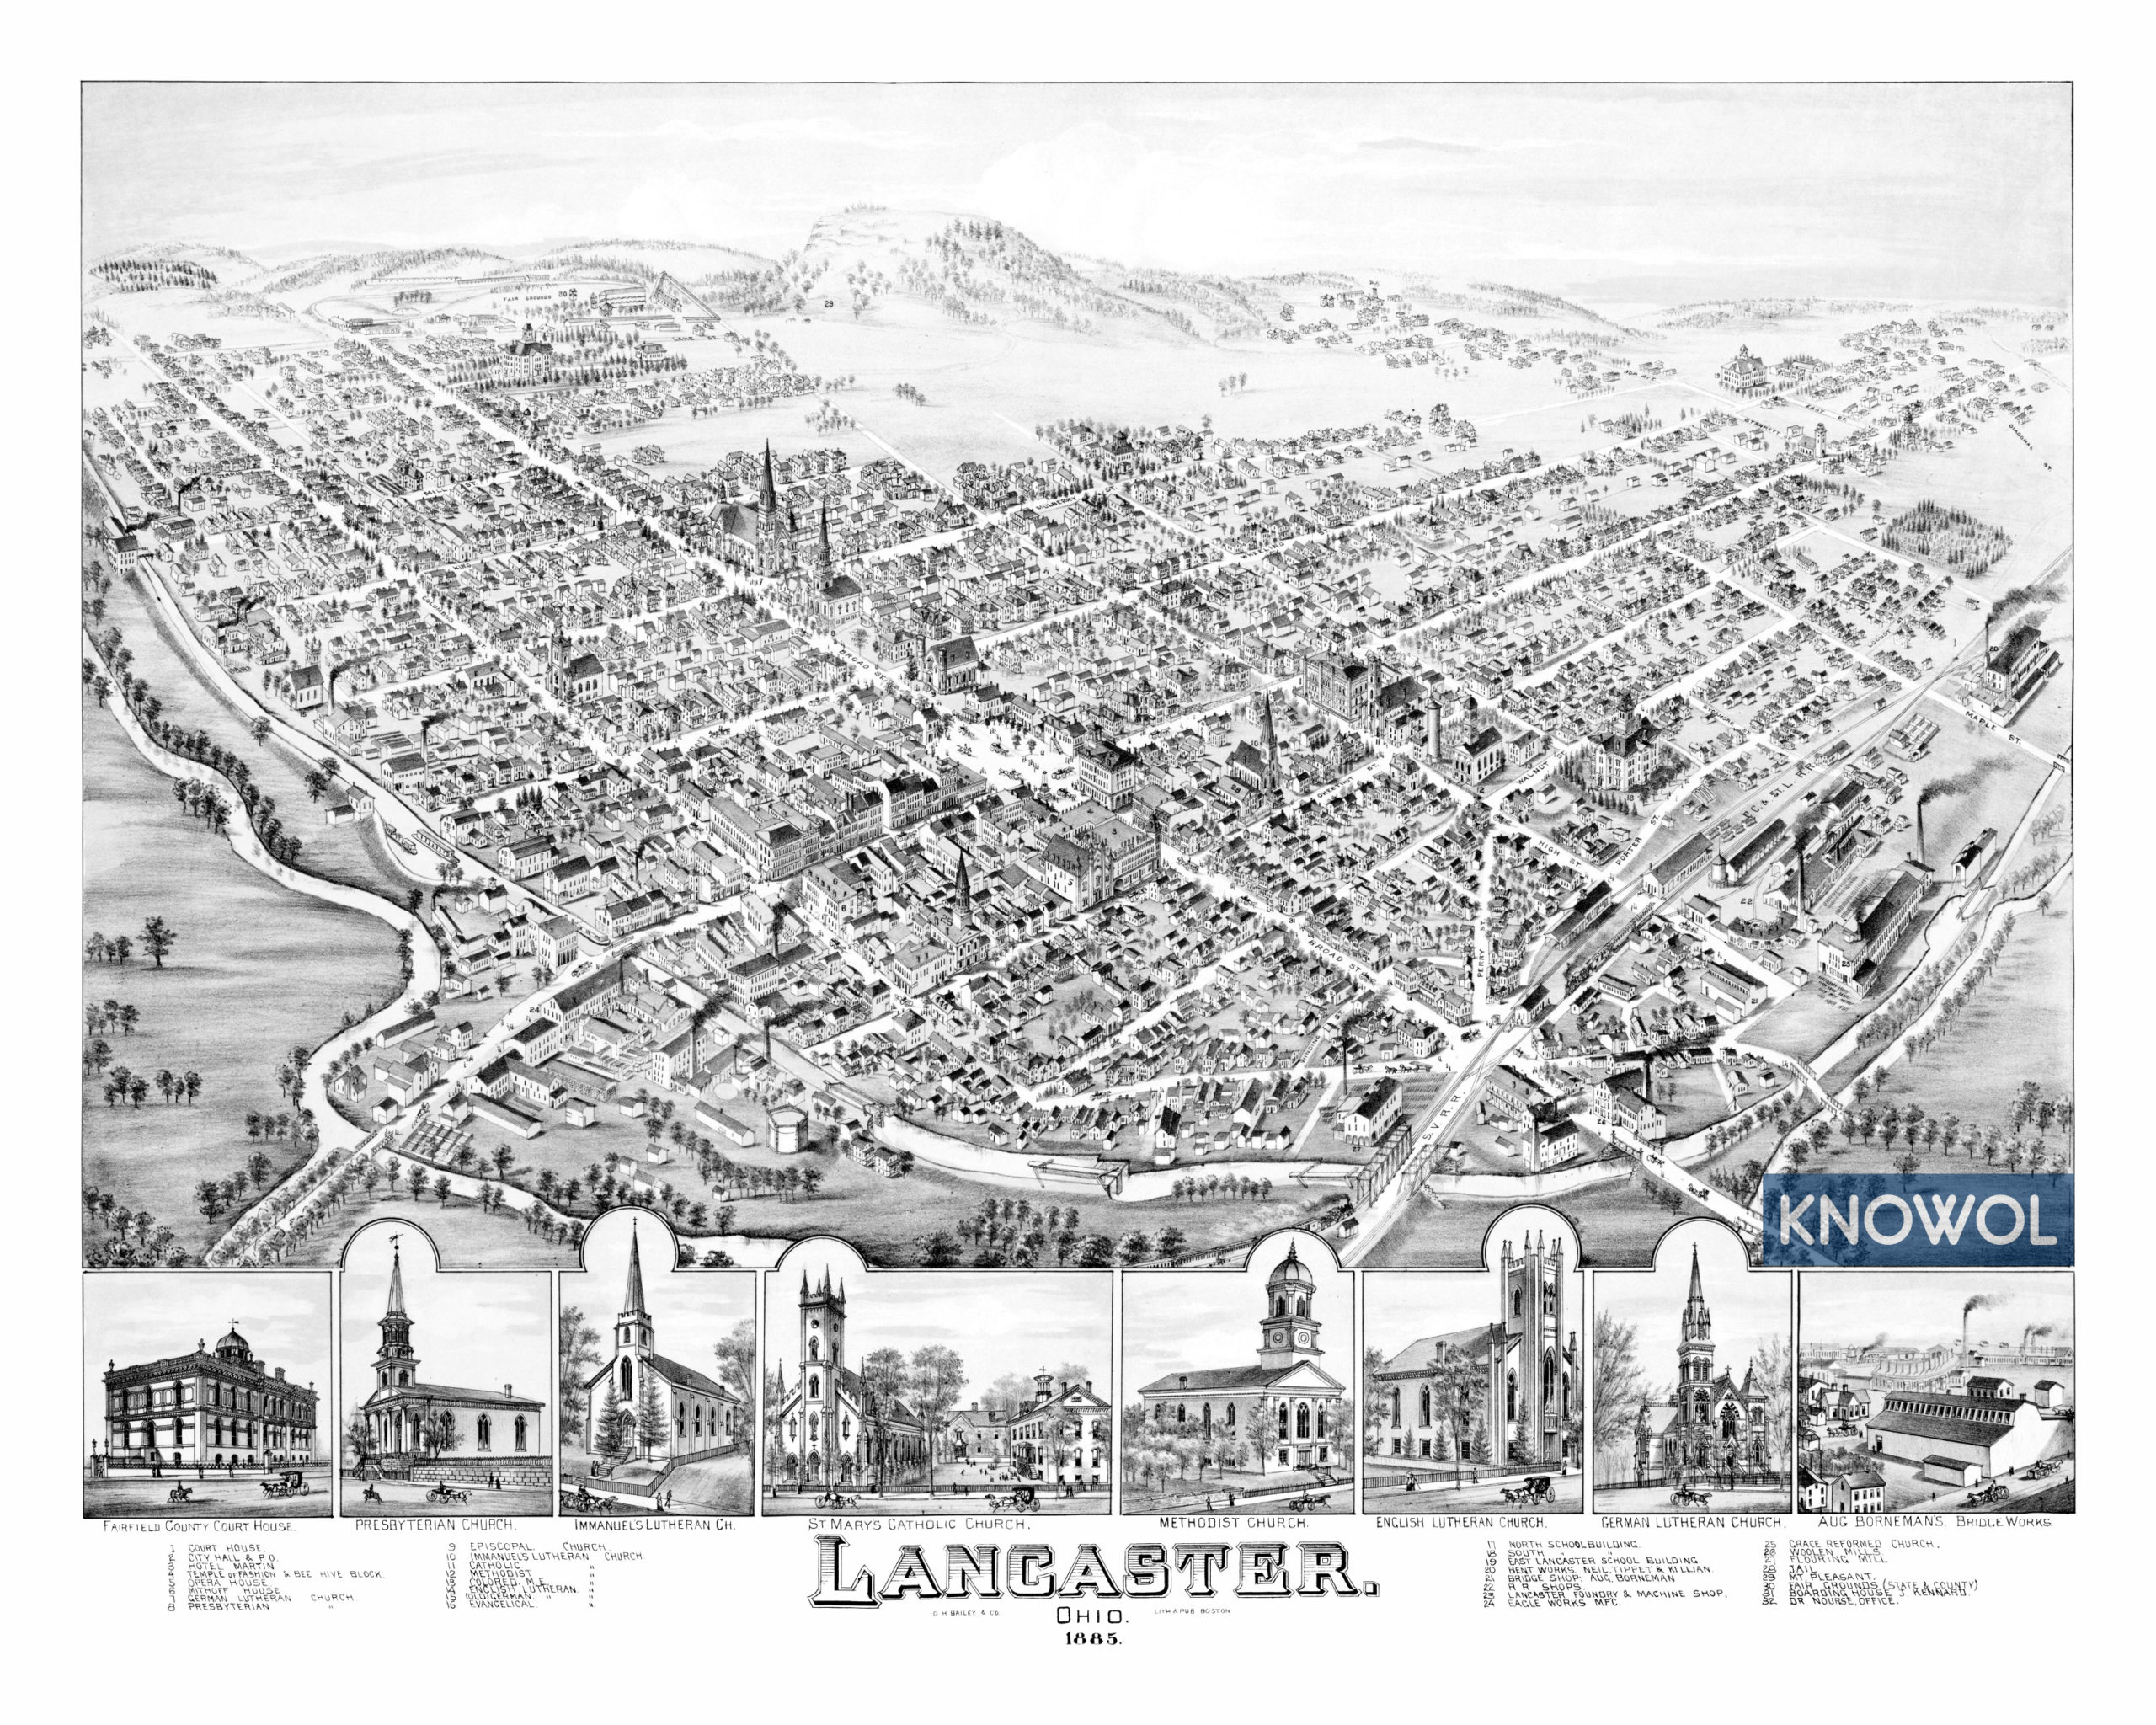 Beautifully restored map of Lancaster, Ohio from 1885 - KNOWOL on map of comsewogue, map of columbia point, map of casselberry, map of locust point, map of university heights, map of lake panasoffkee, map of holly hill, map of oak hill, map of government center, map of gordonsville, map of kenansville, map of cassadaga, map of carrabelle, map of mead, map of pahokee, map of matlacha, map of seaport district, map of long key, map of southwest orlando, map of wimauma,